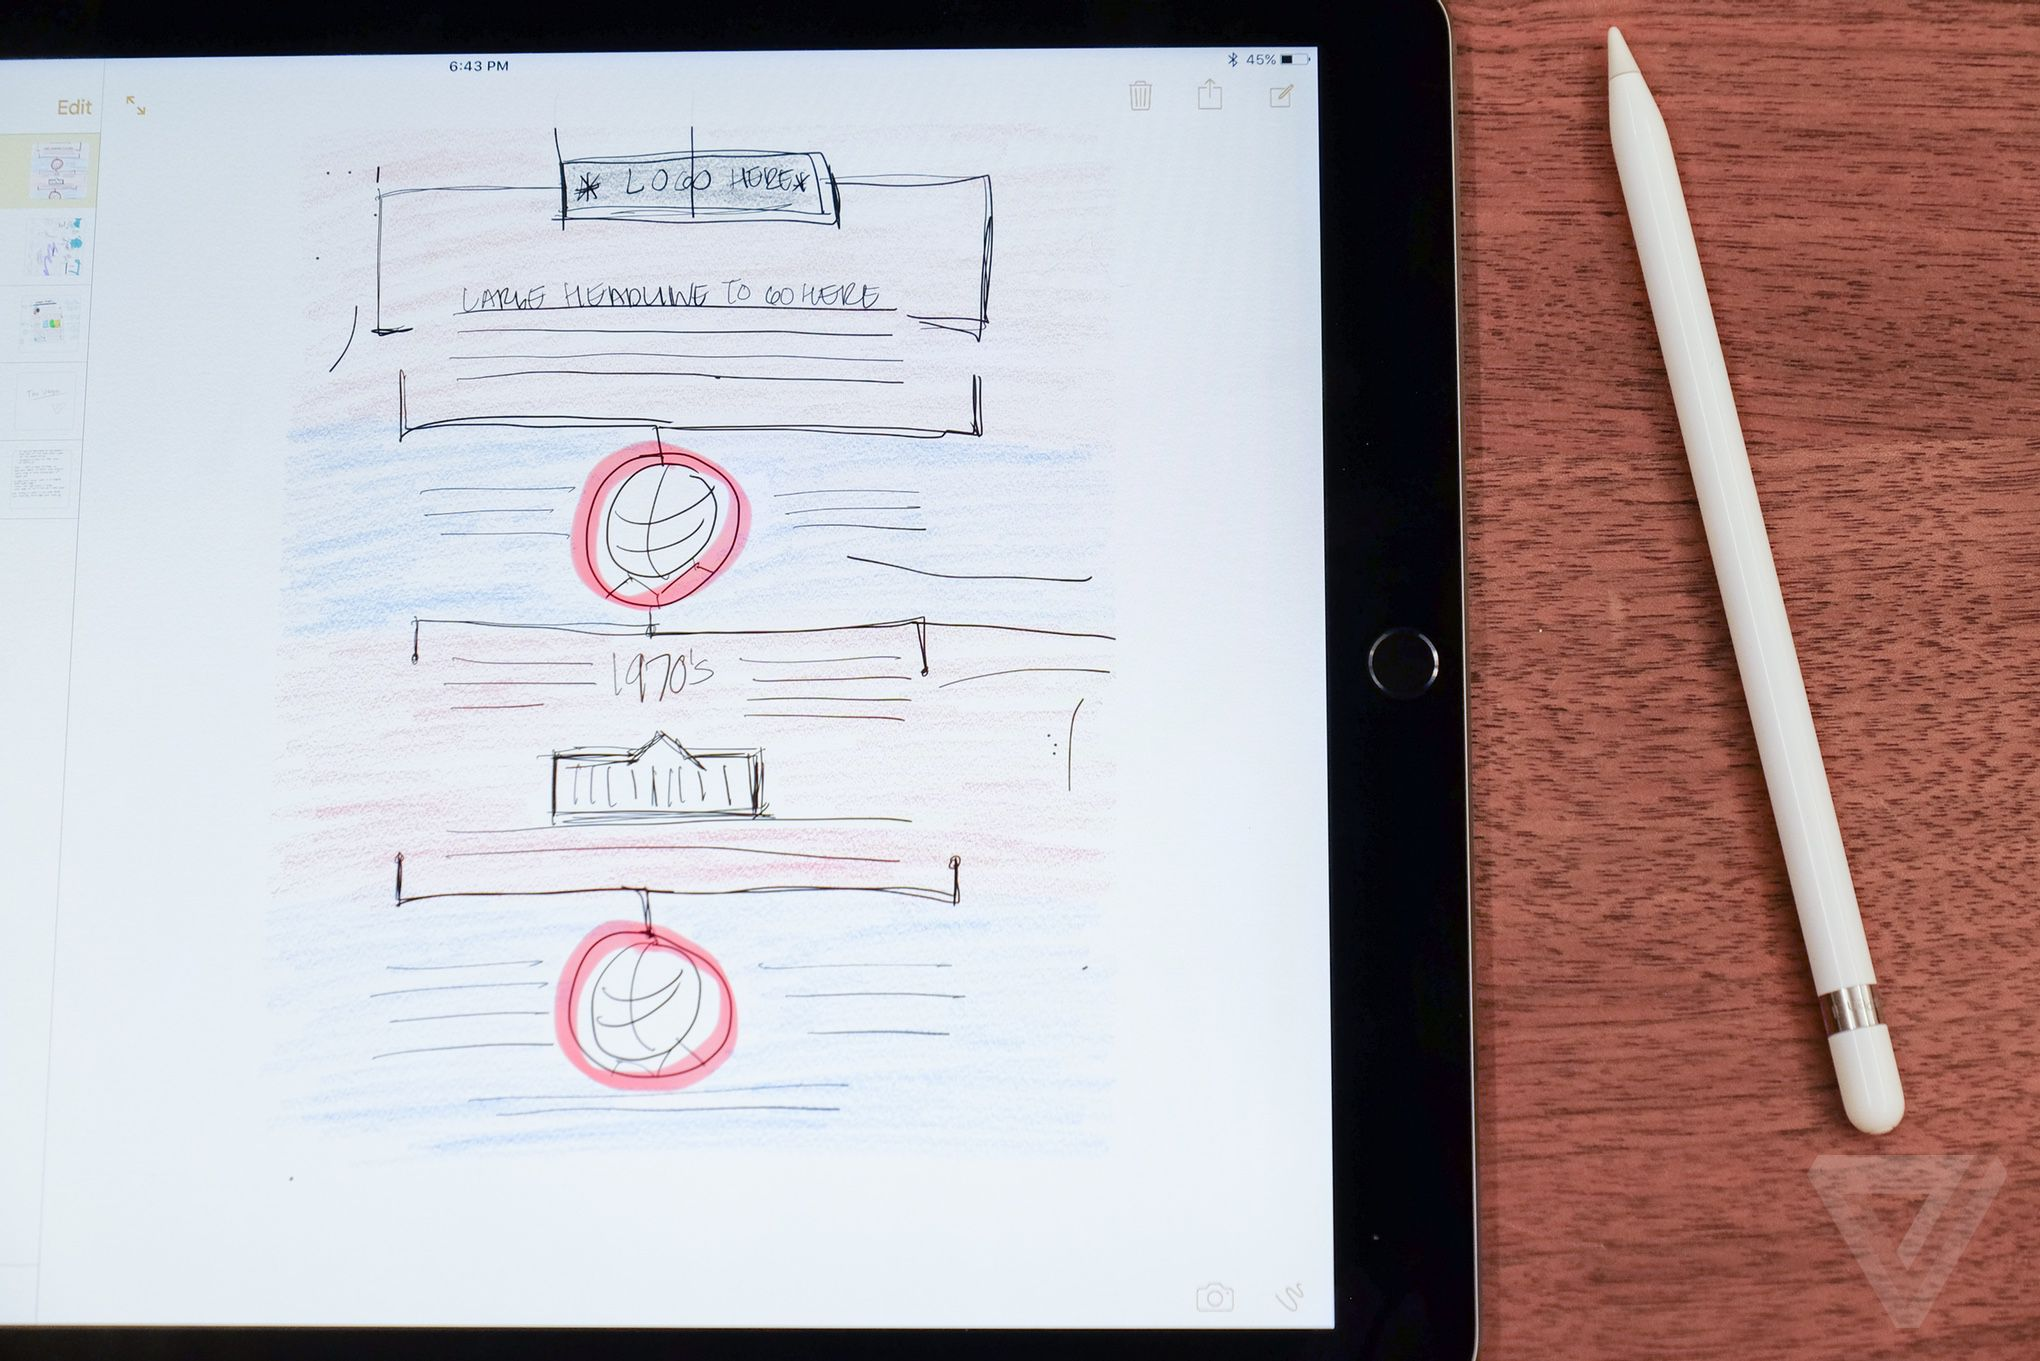 Architecture Drawing Ipad a designer's take on the ipad pro | the verge